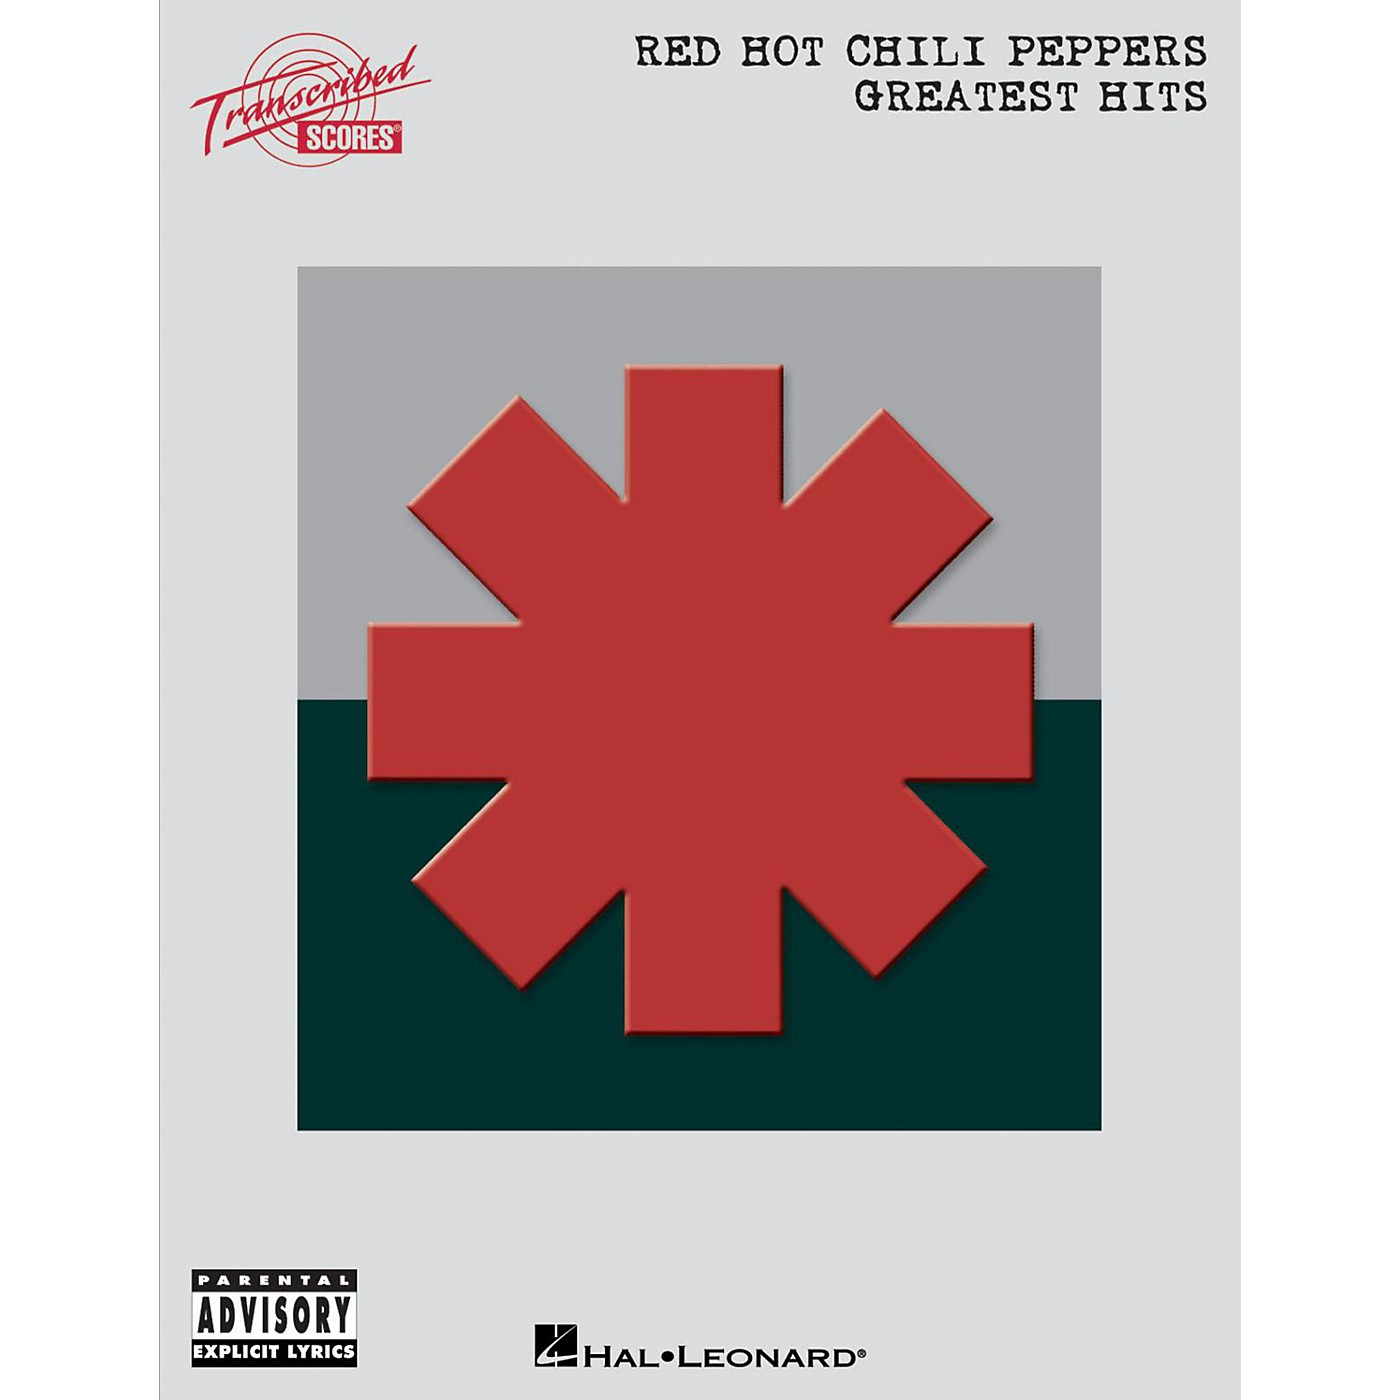 Hal Leonard Red Hot Chili Peppers Greatest Hits Transcribed Scores thumbnail